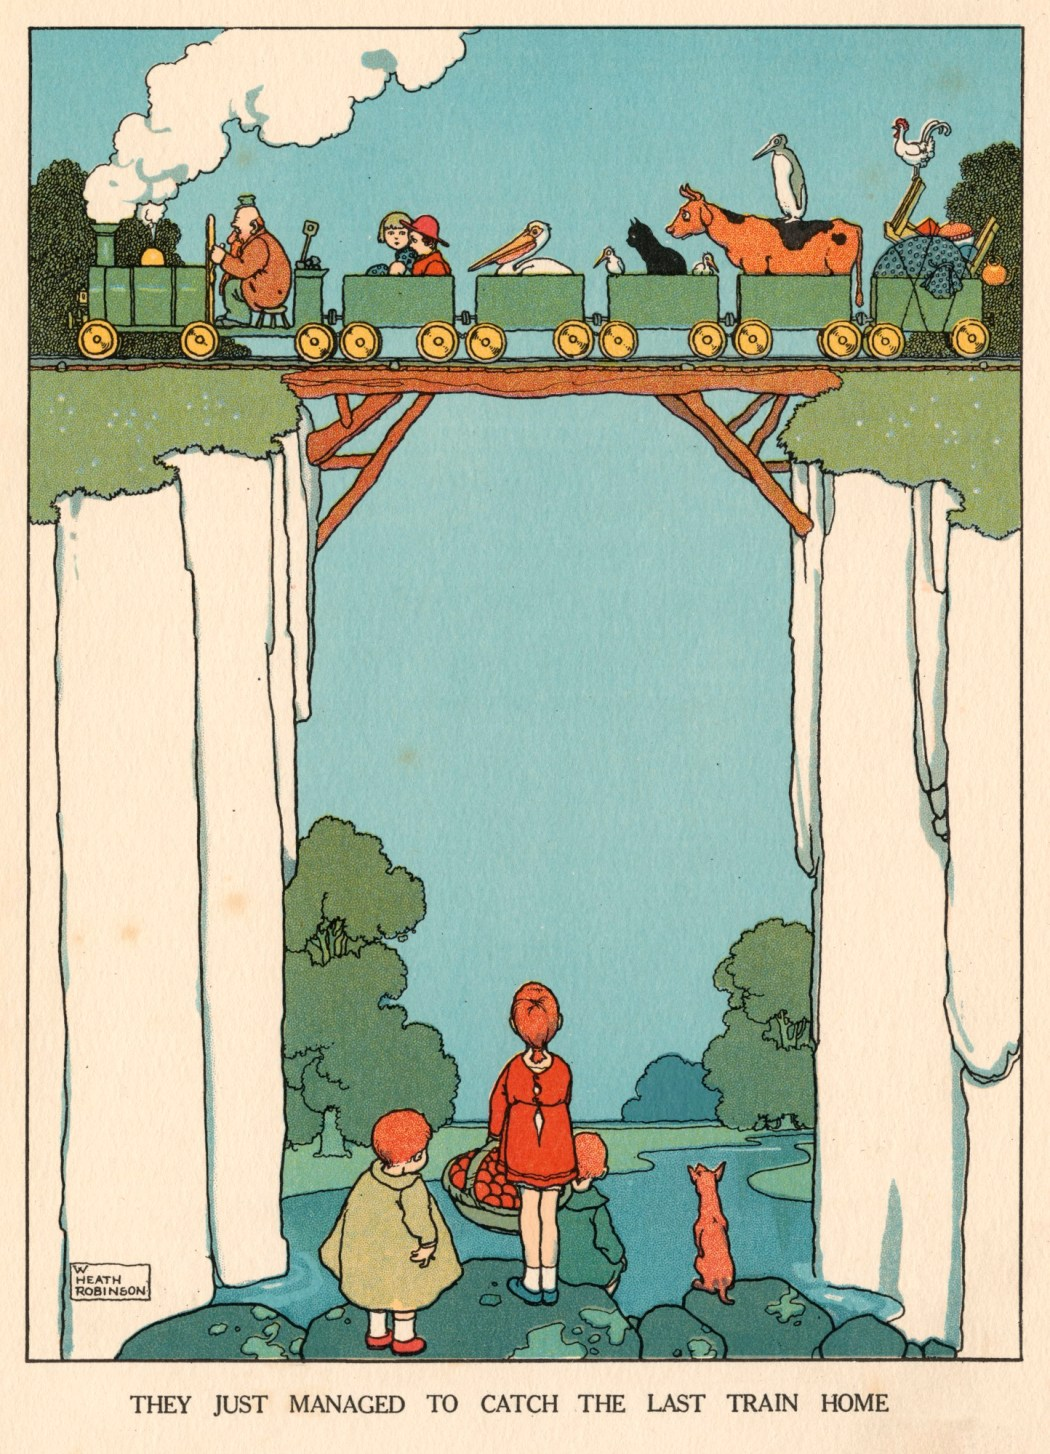 William Heath Robinson | Artist | Royal Academy of Arts